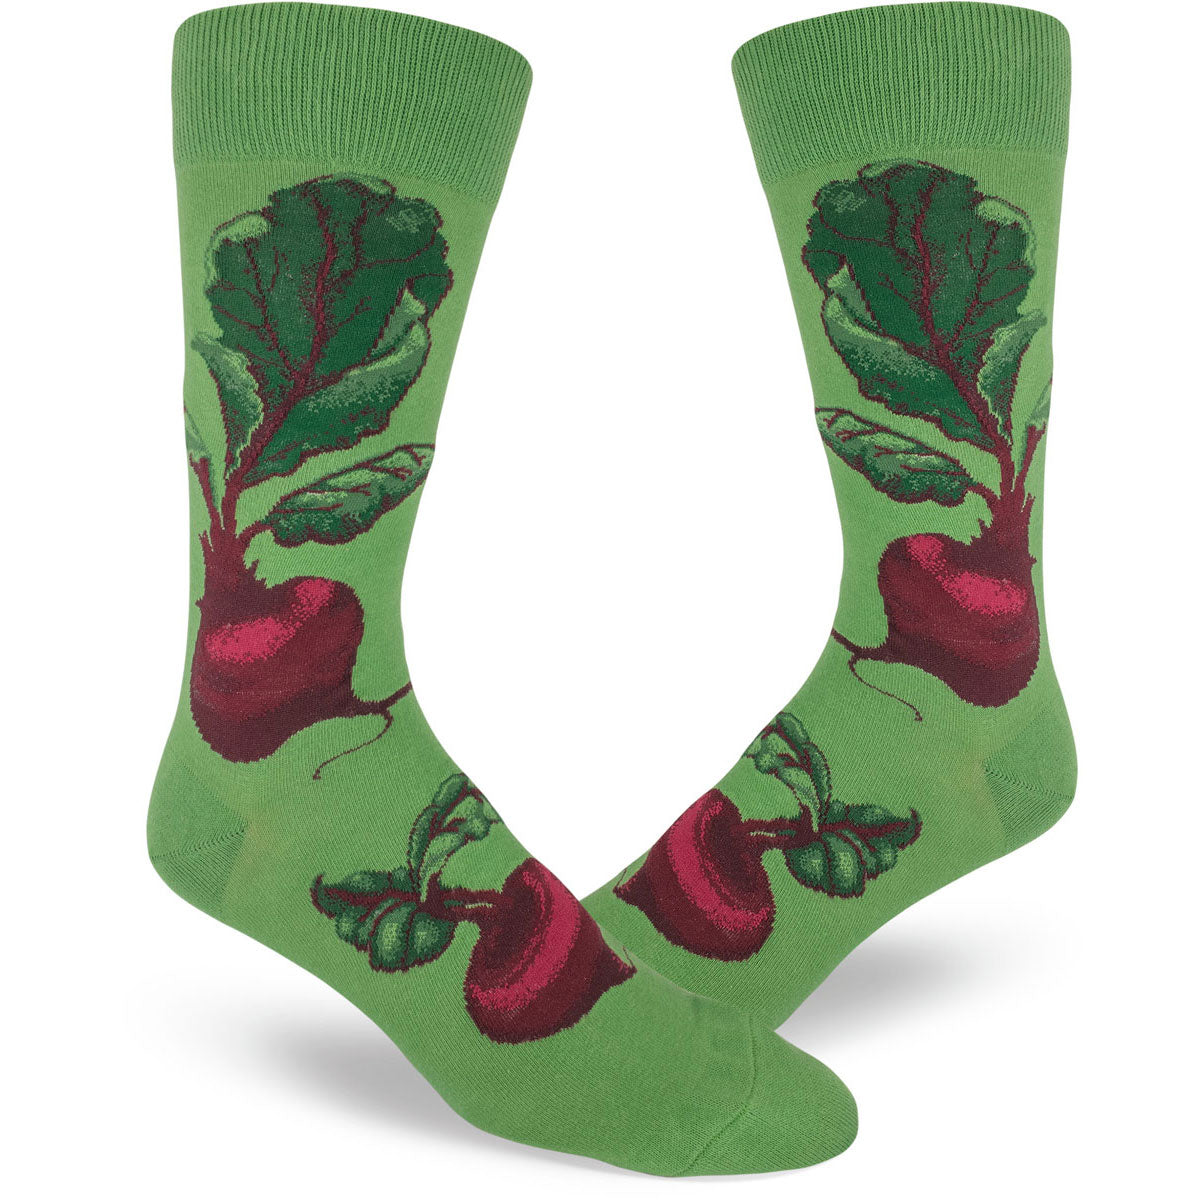 Men's socks with beets